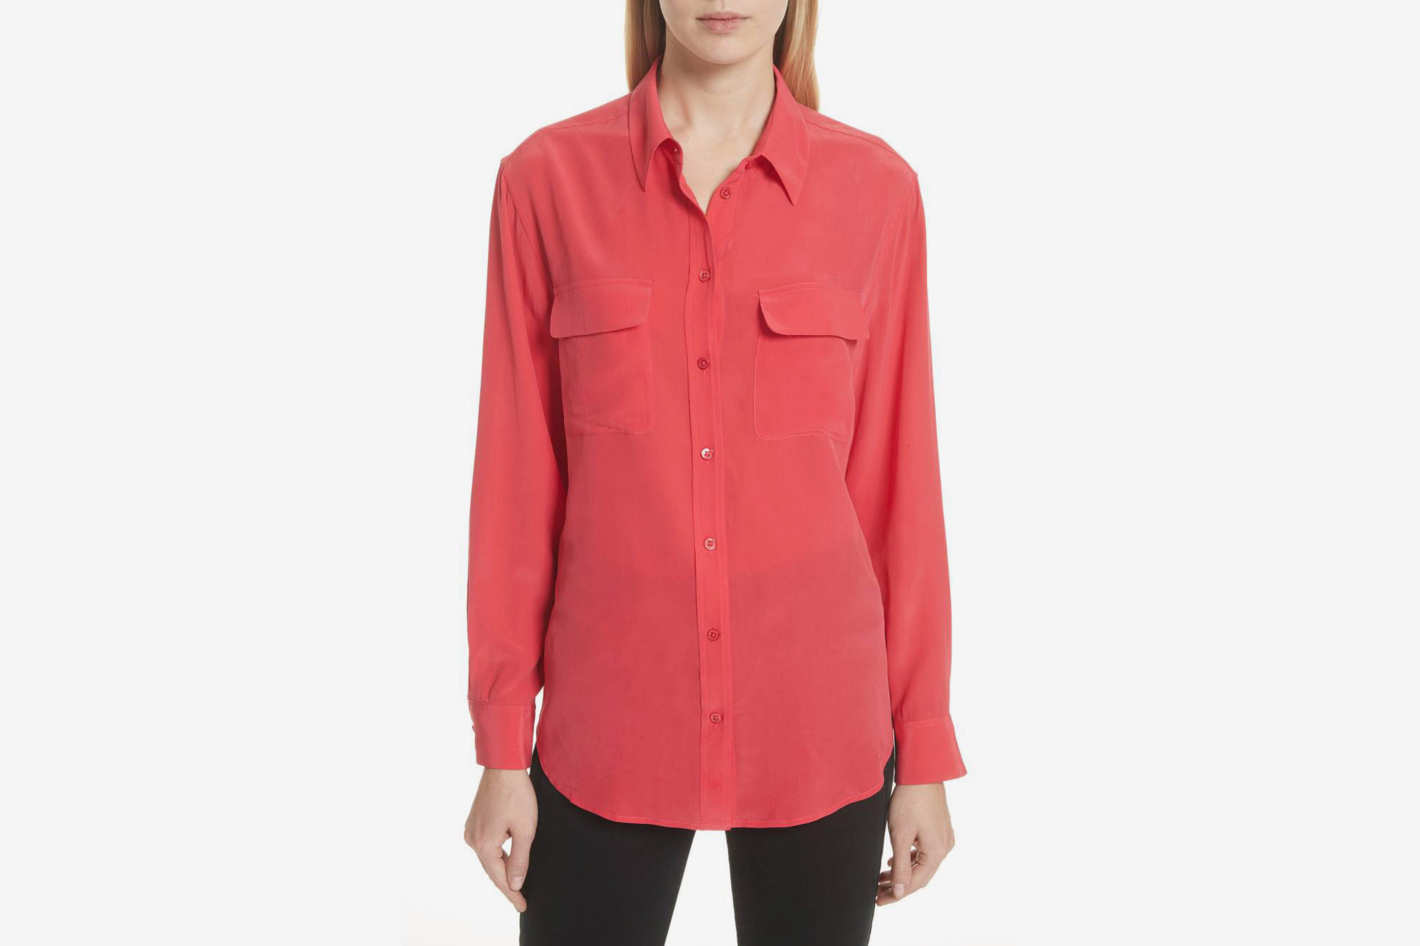 9e1daa78e6b00 The Best Women s Blouse You Can Buy in Every Color